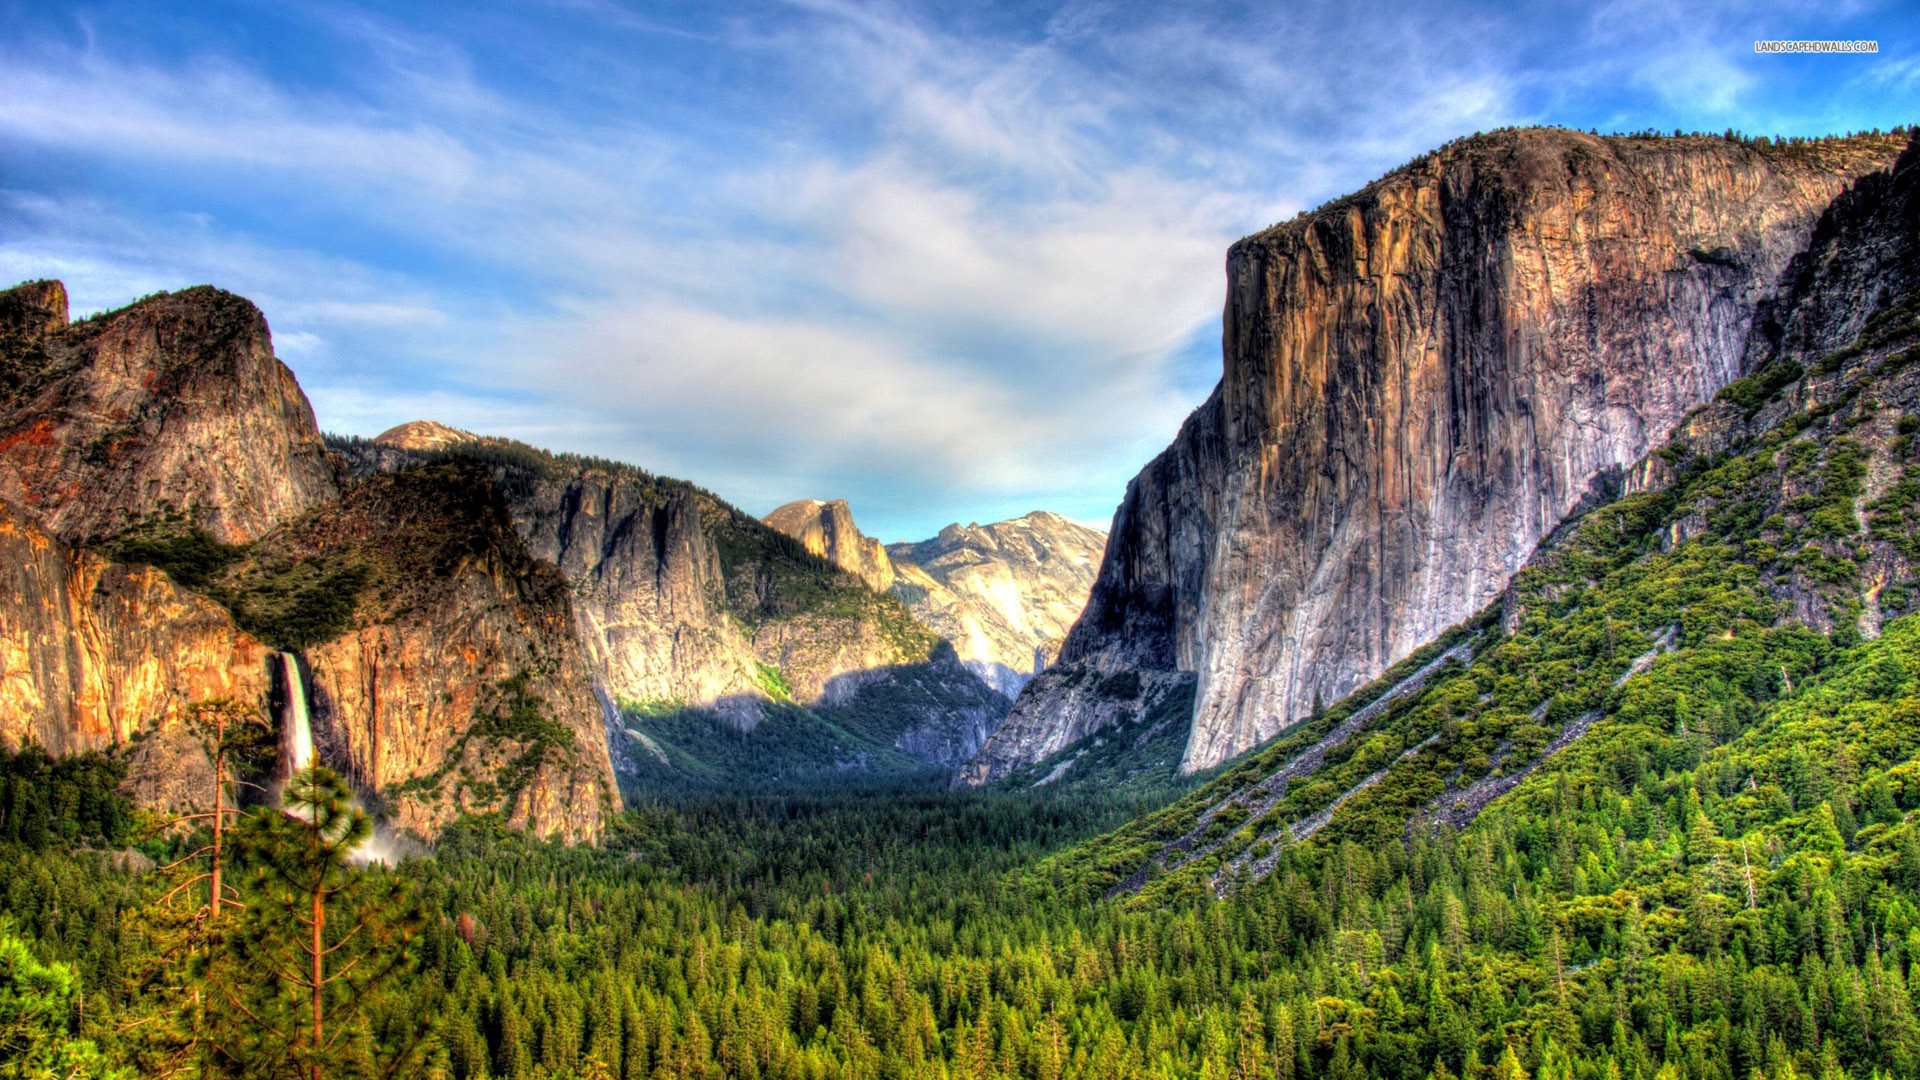 1920x1080 Grab-These-Gorgeous-OS-X-Yosemite-wallpaper-wpt7405240